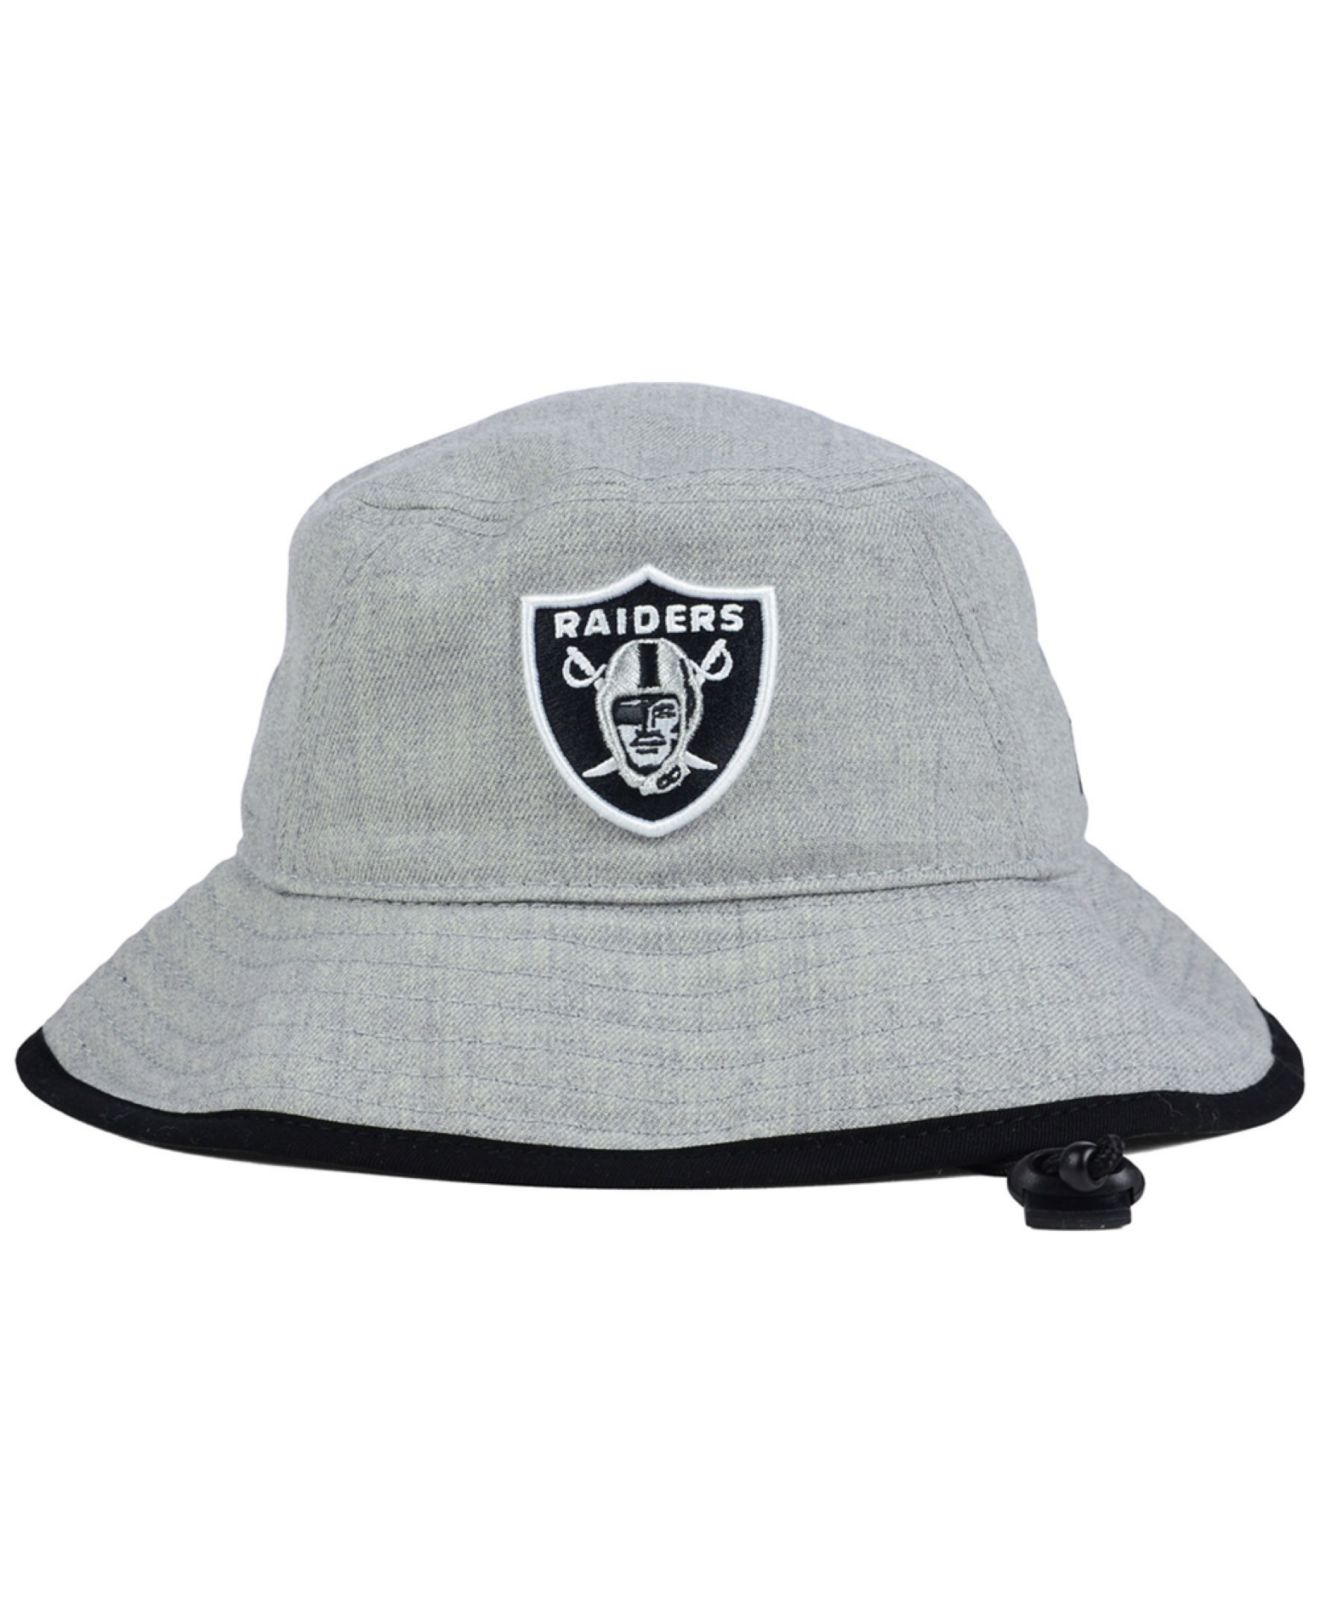 Lyst - KTZ Oakland Raiders Nfl Heather Gray Bucket Hat in Gray ee4c1e7bdbf